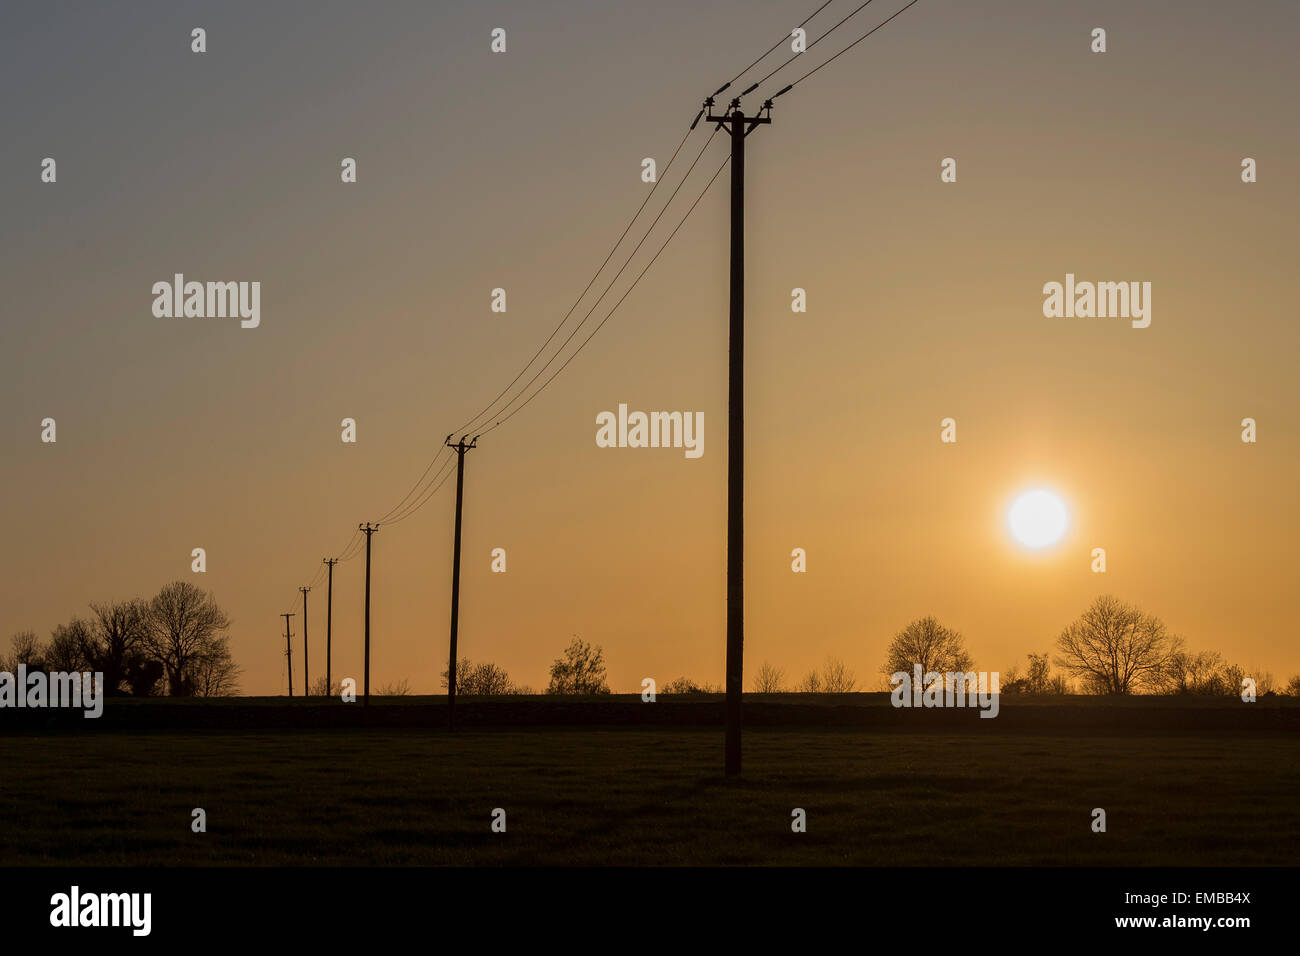 Electricity/telegraph poles in golden sunset form a line